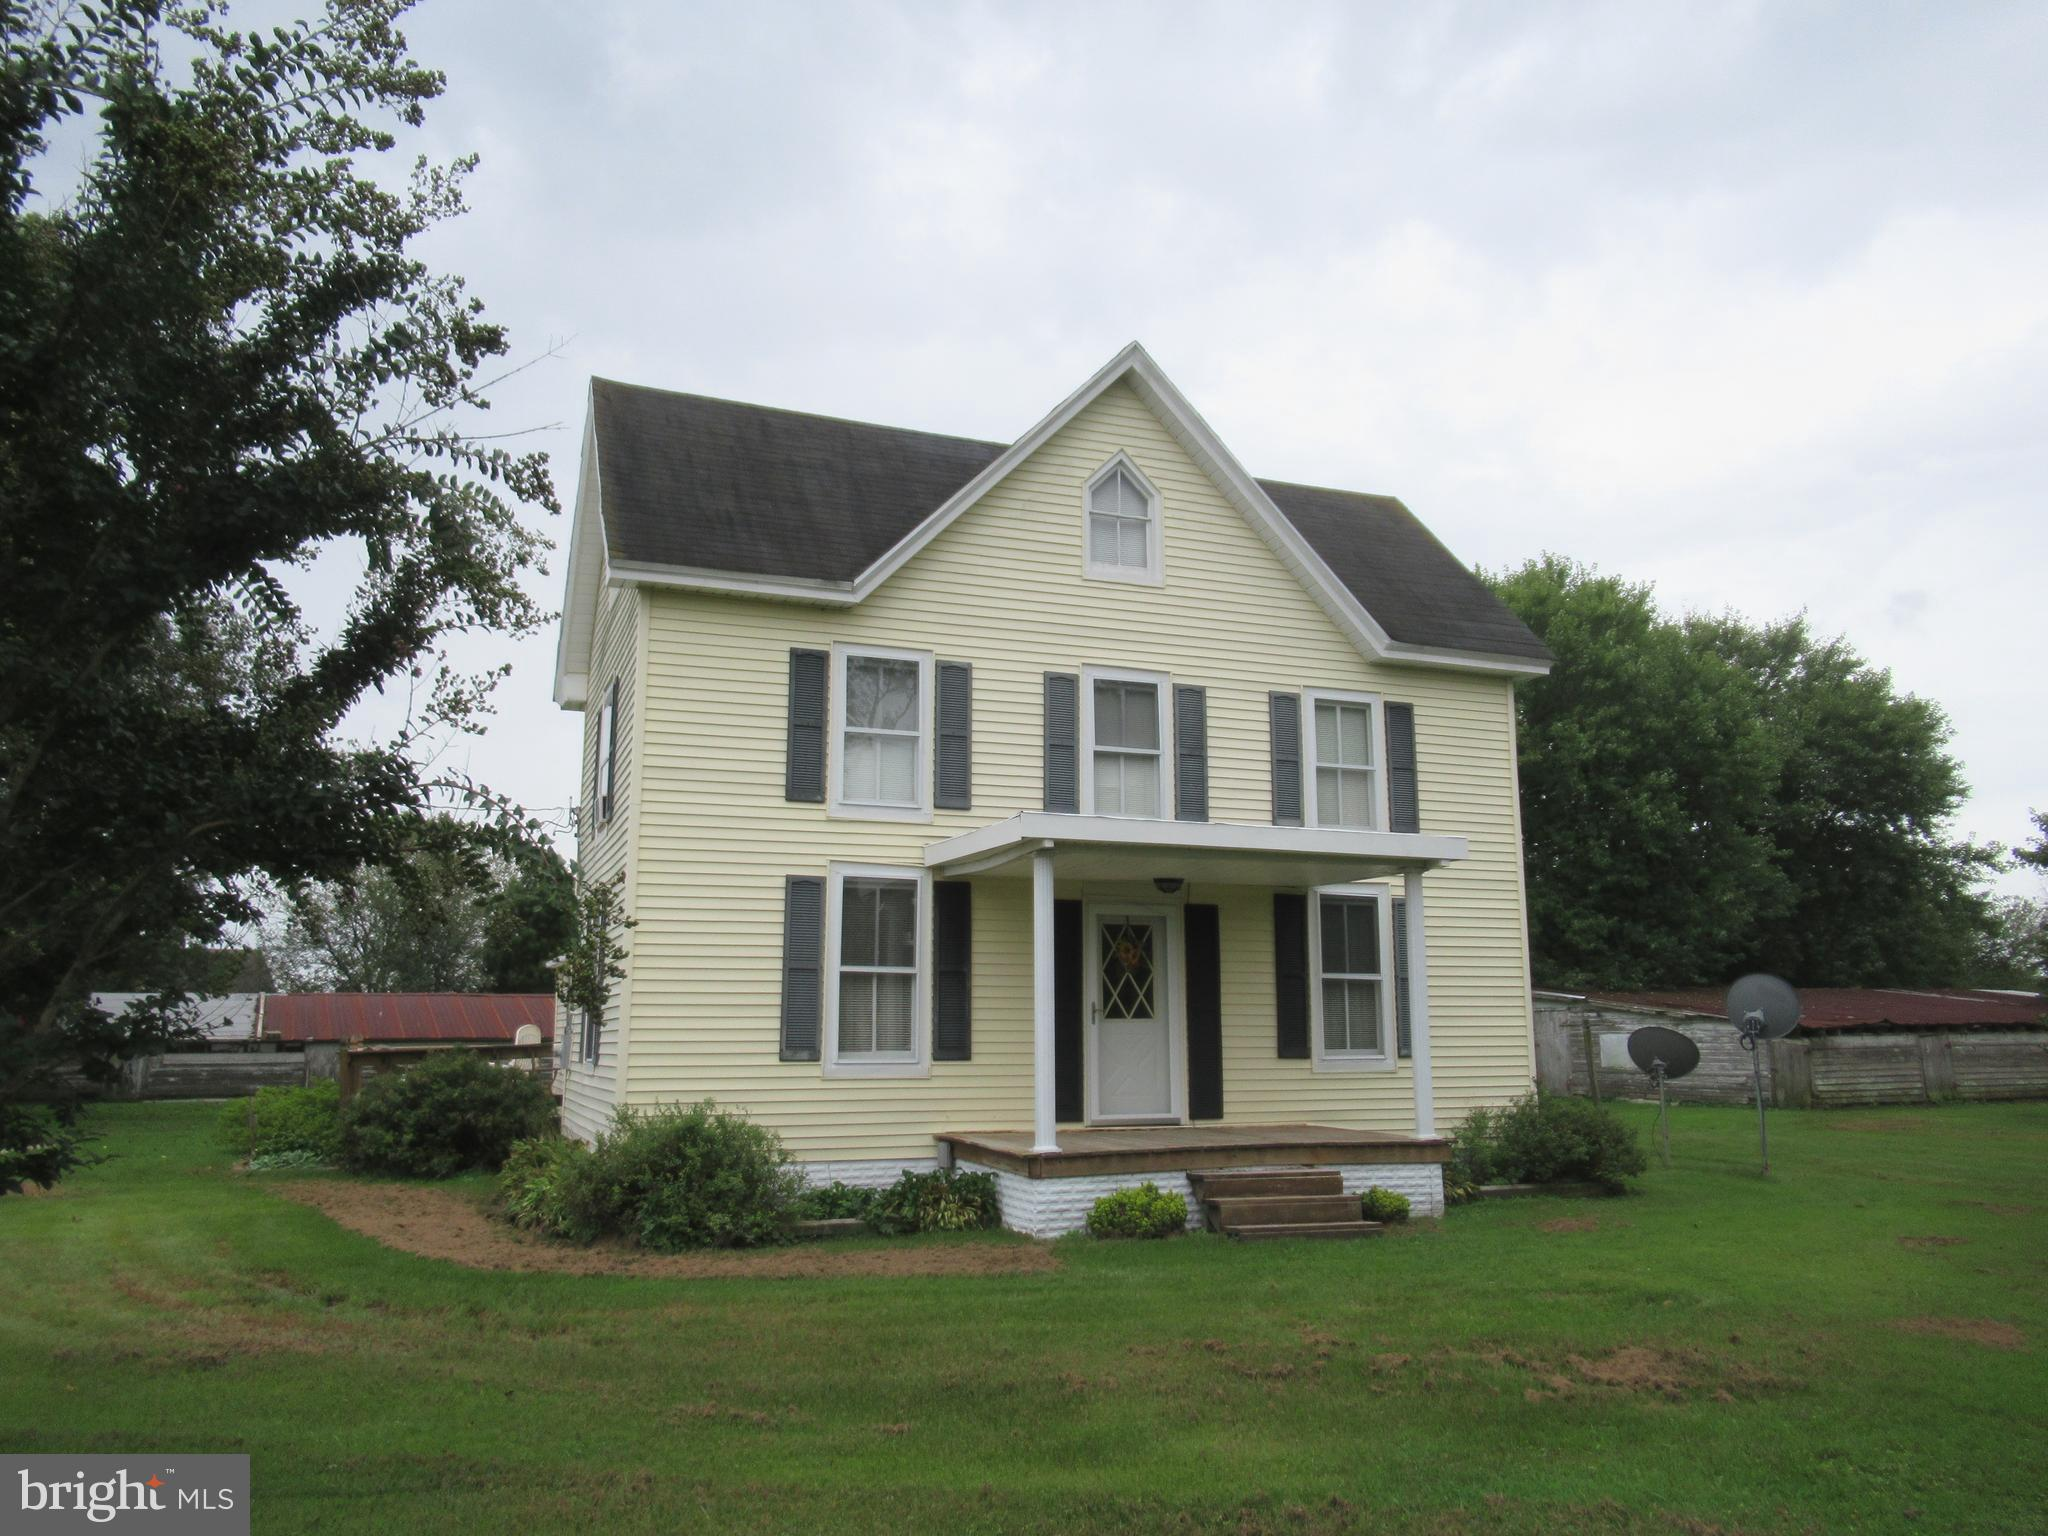 28561 LQ POWELL ROAD, MARION STATION, MD 21838